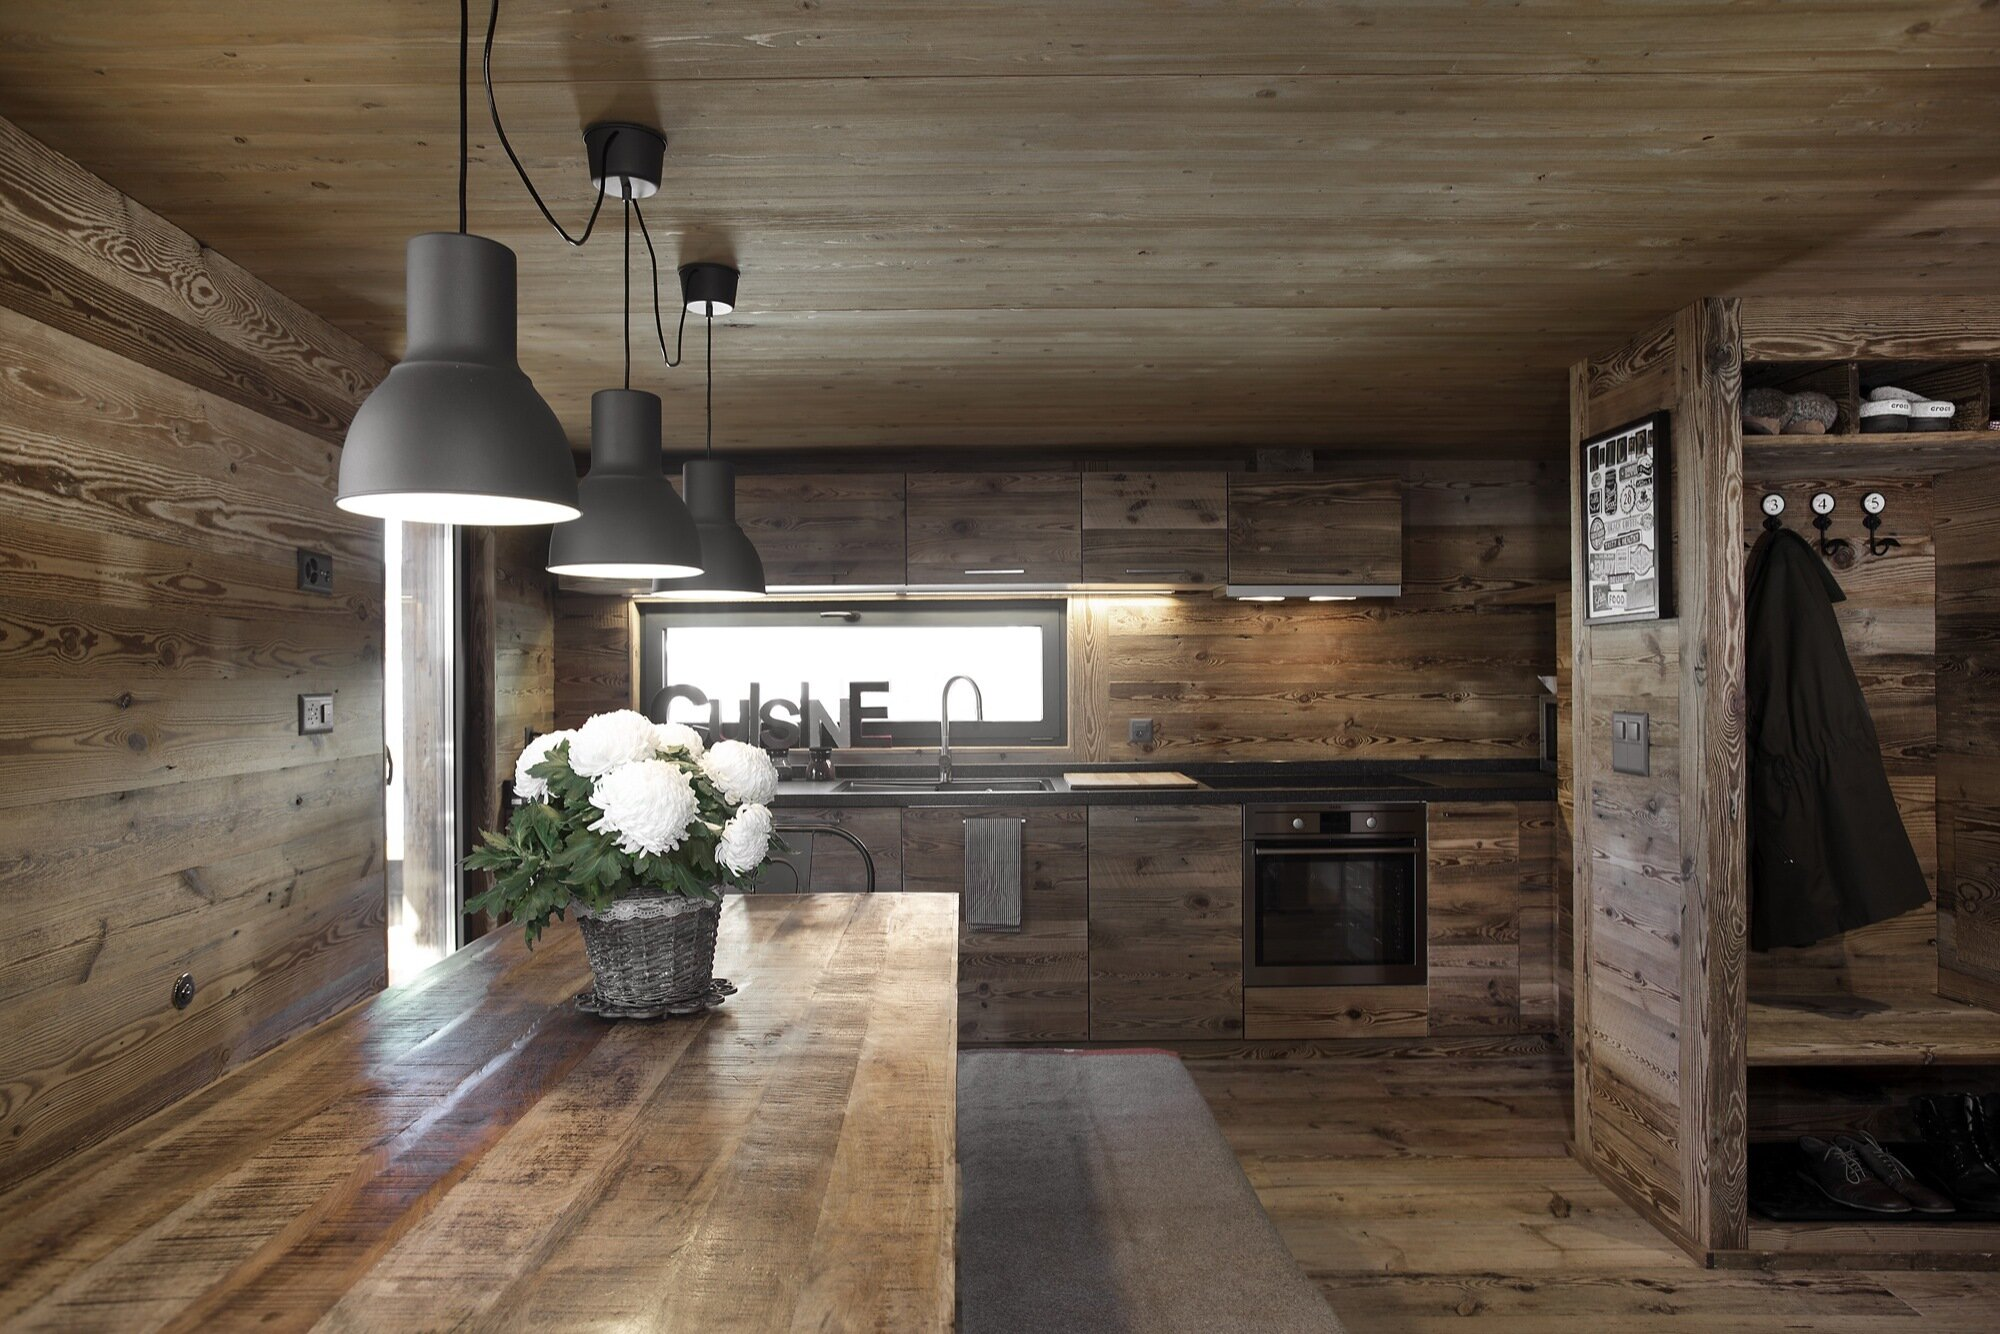 200 Year Old Barn Gets Dismantled And Rebuilt As A Cozy Cabin